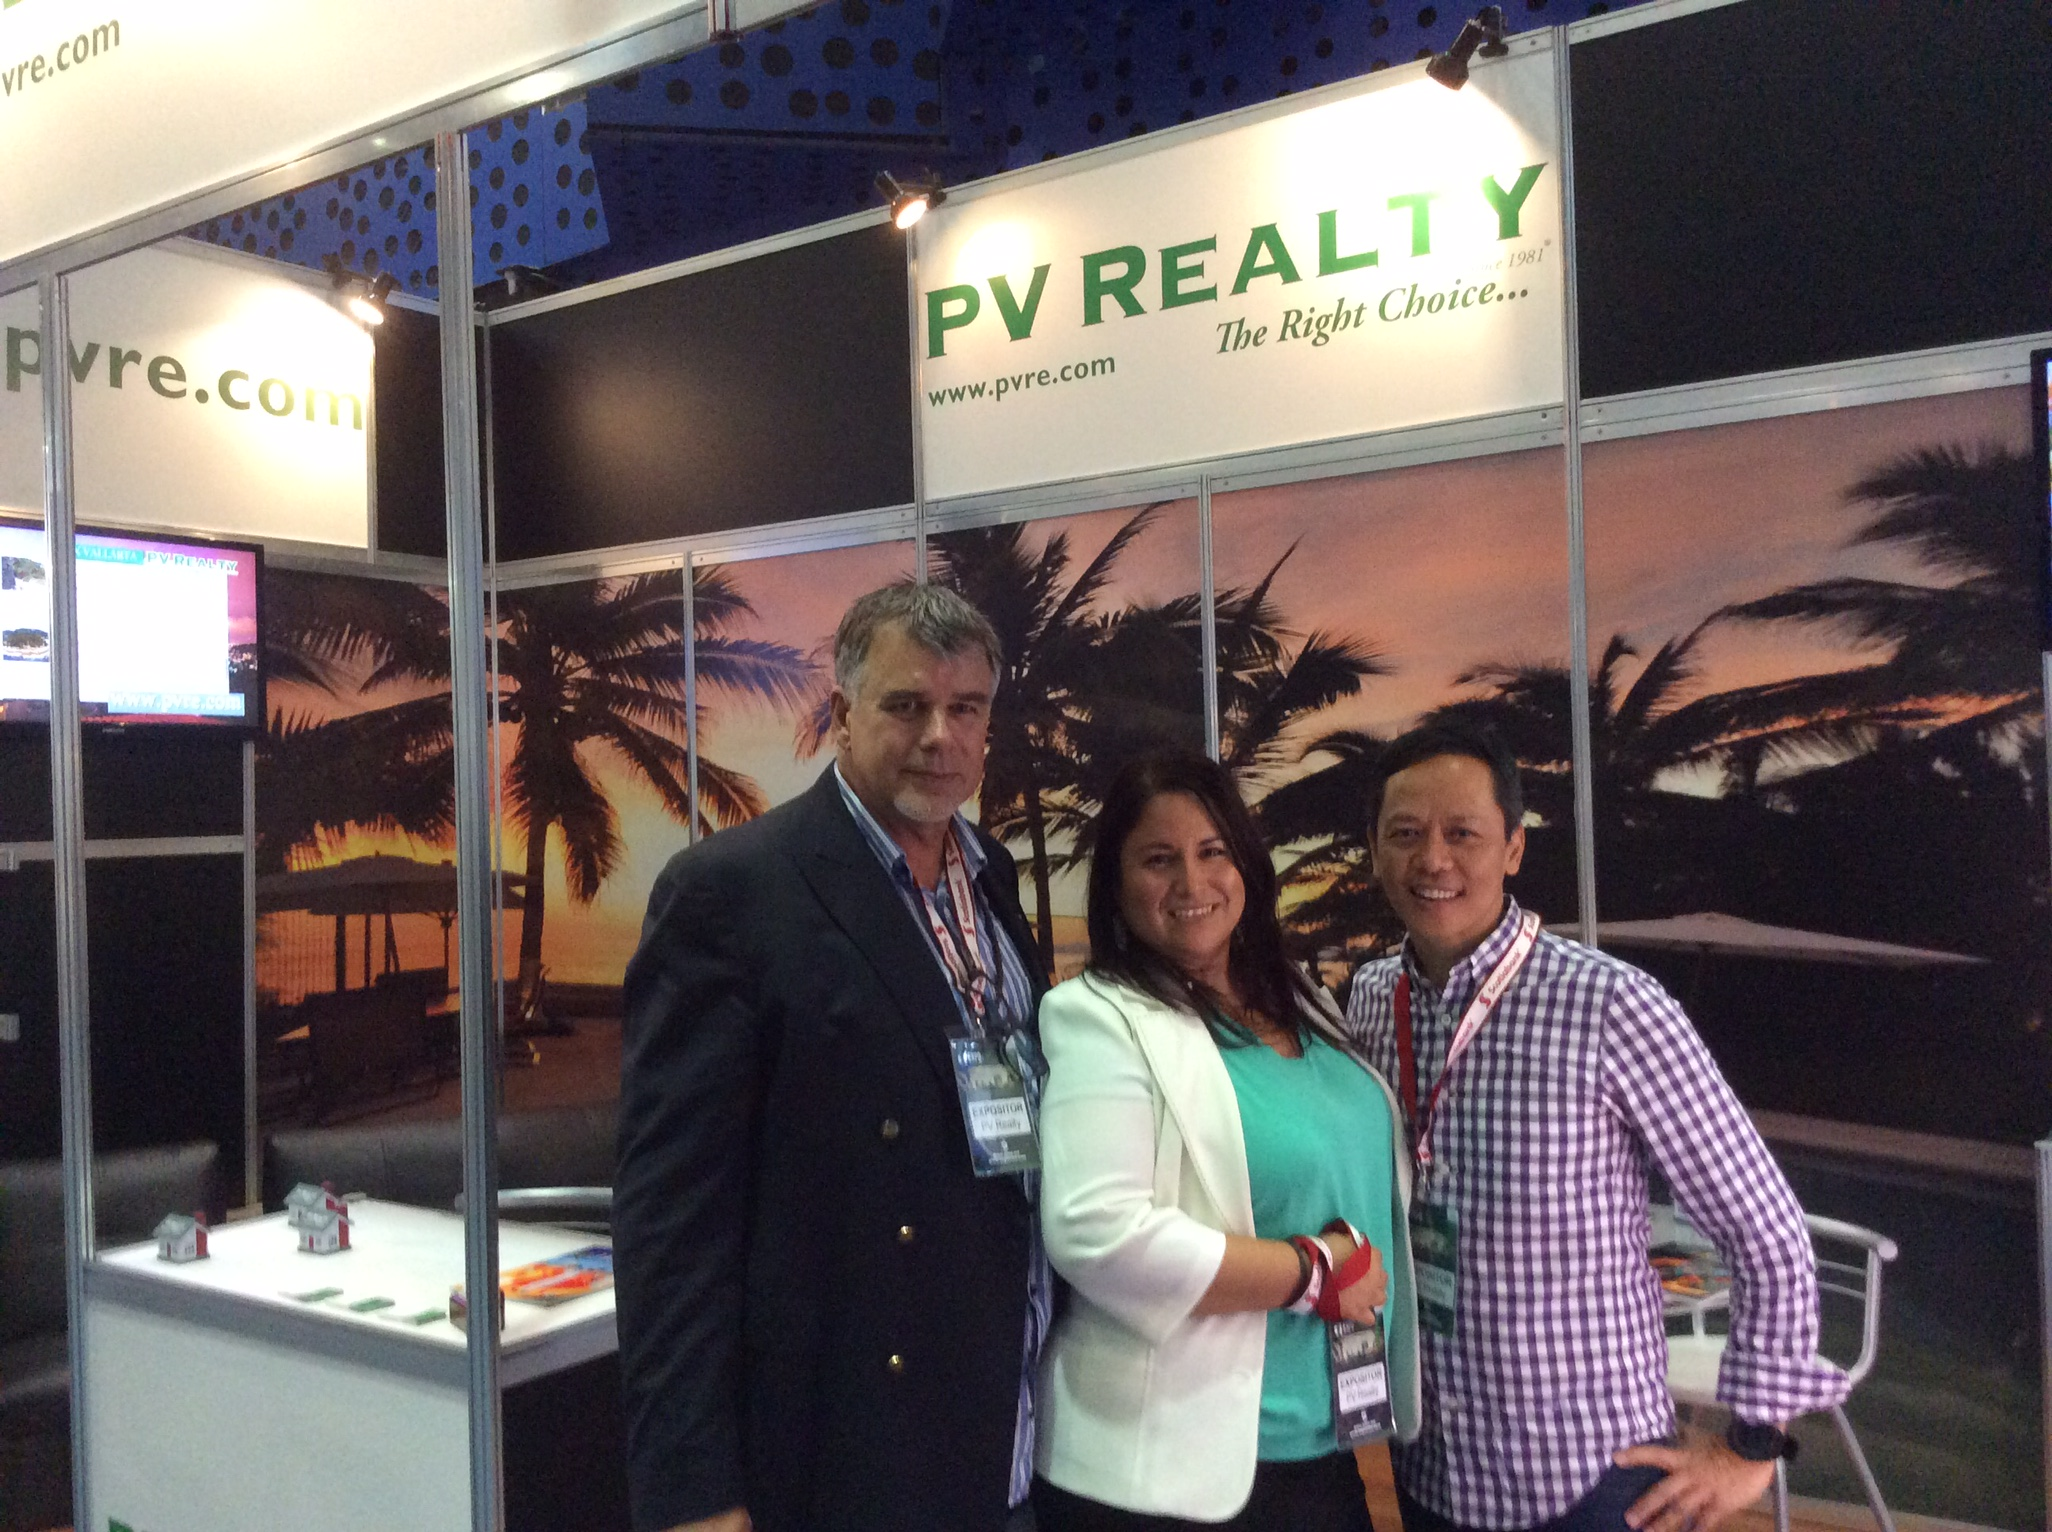 Expo SIME 2015  PV Realty, Trabajando para sus distinguidos clientes.  PV Realty  Working for its distinguished clients. IMG 2308